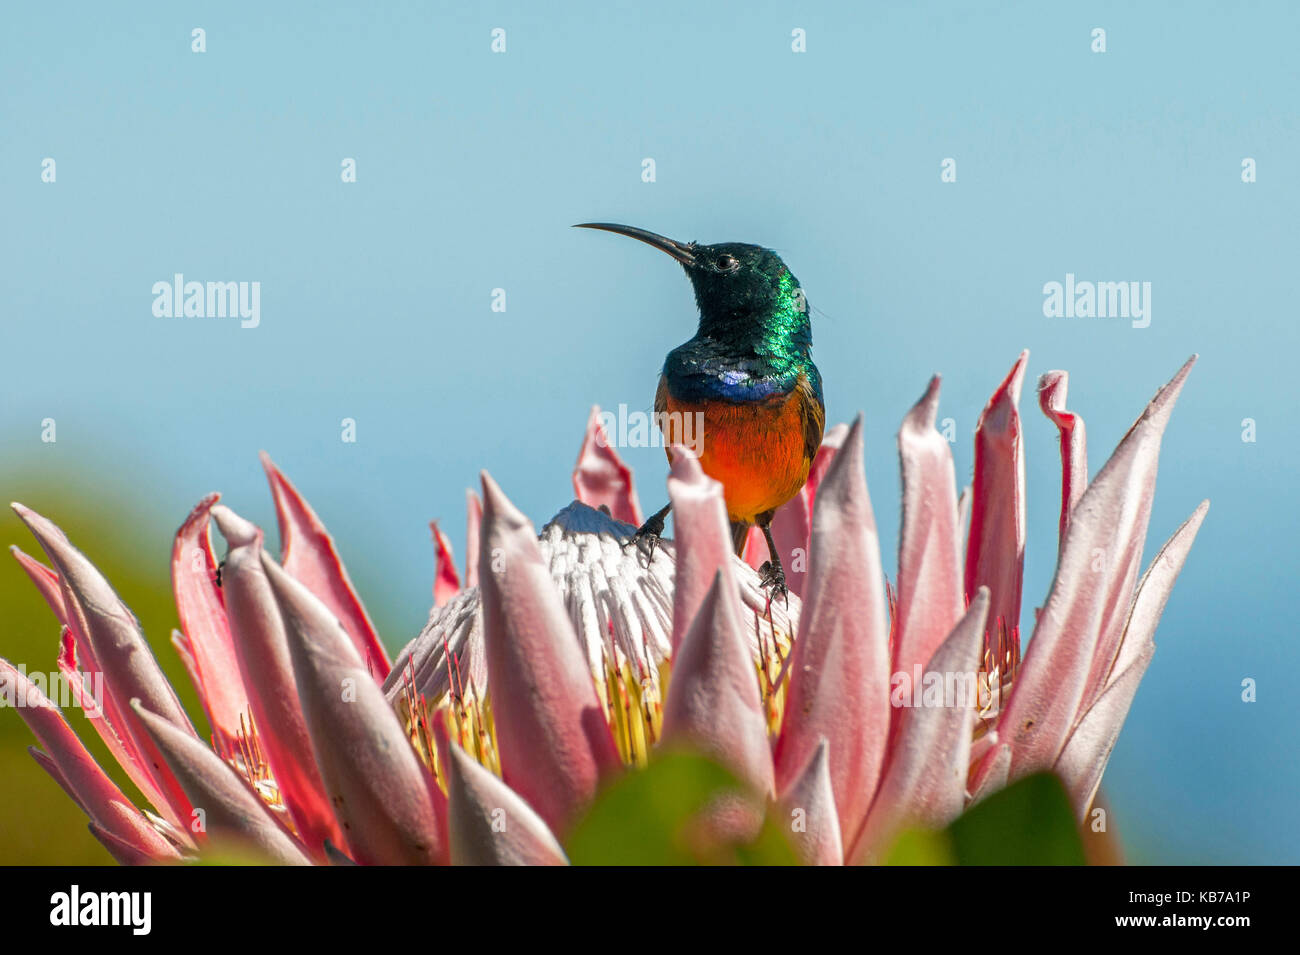 Orange-breasted Sunbird (Anthobaphes violacea) male on Giant Protea (Protea cynaroide), South Africa, Western Cape, - Stock Image